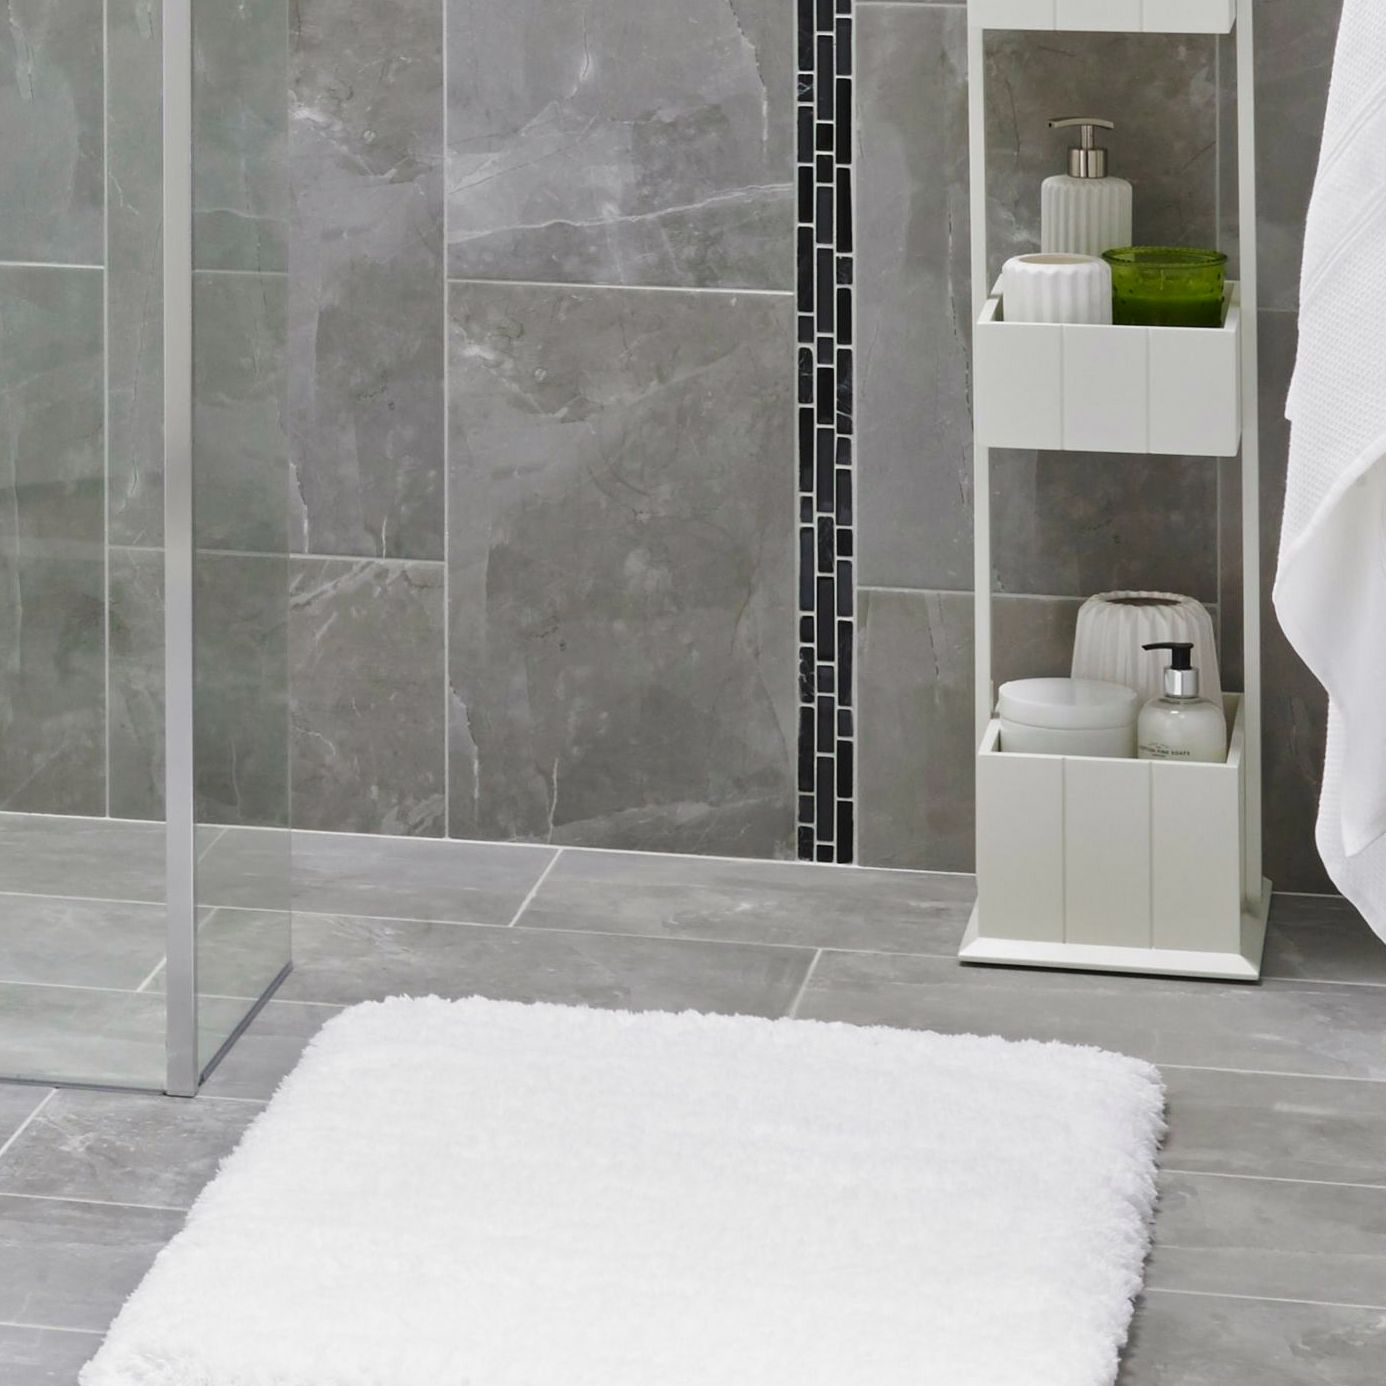 b and q wall tiles bathroom arlington tile range floor amp wall tiles diy at b amp q 24823